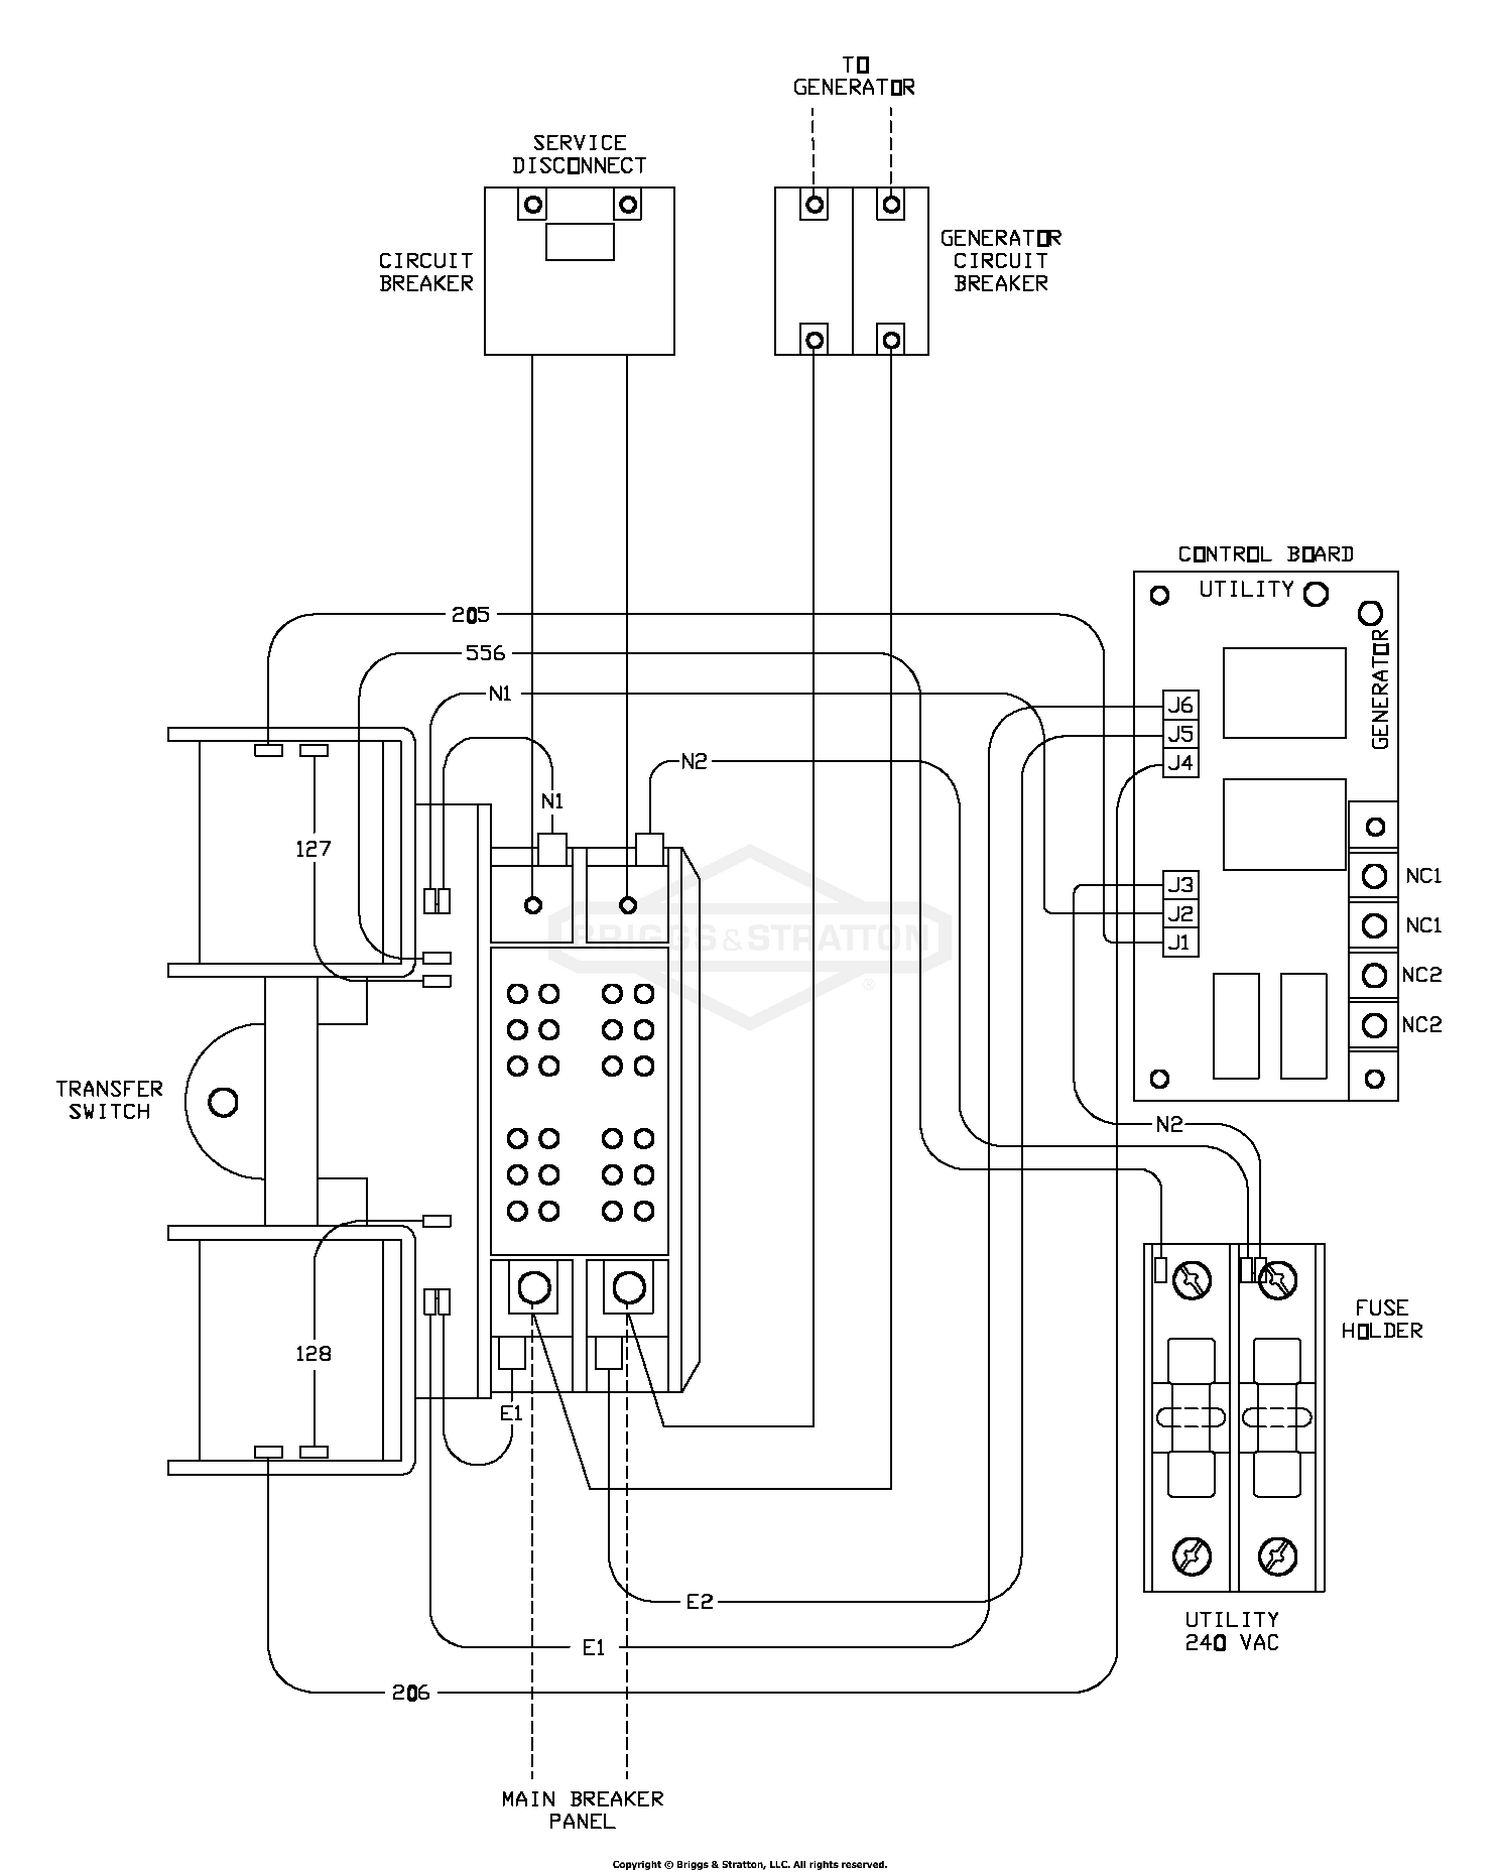 [DIAGRAM_0HG]  Briggs & Stratton Power Products_DEL_26072017021729 071023-0 - 200 Amp  Automatic Transfer Switch w/SED Wiring Diagram - Transfer Switch | Briggs And Stratton Transfer Switch Wiring Diagram |  | Weingartz